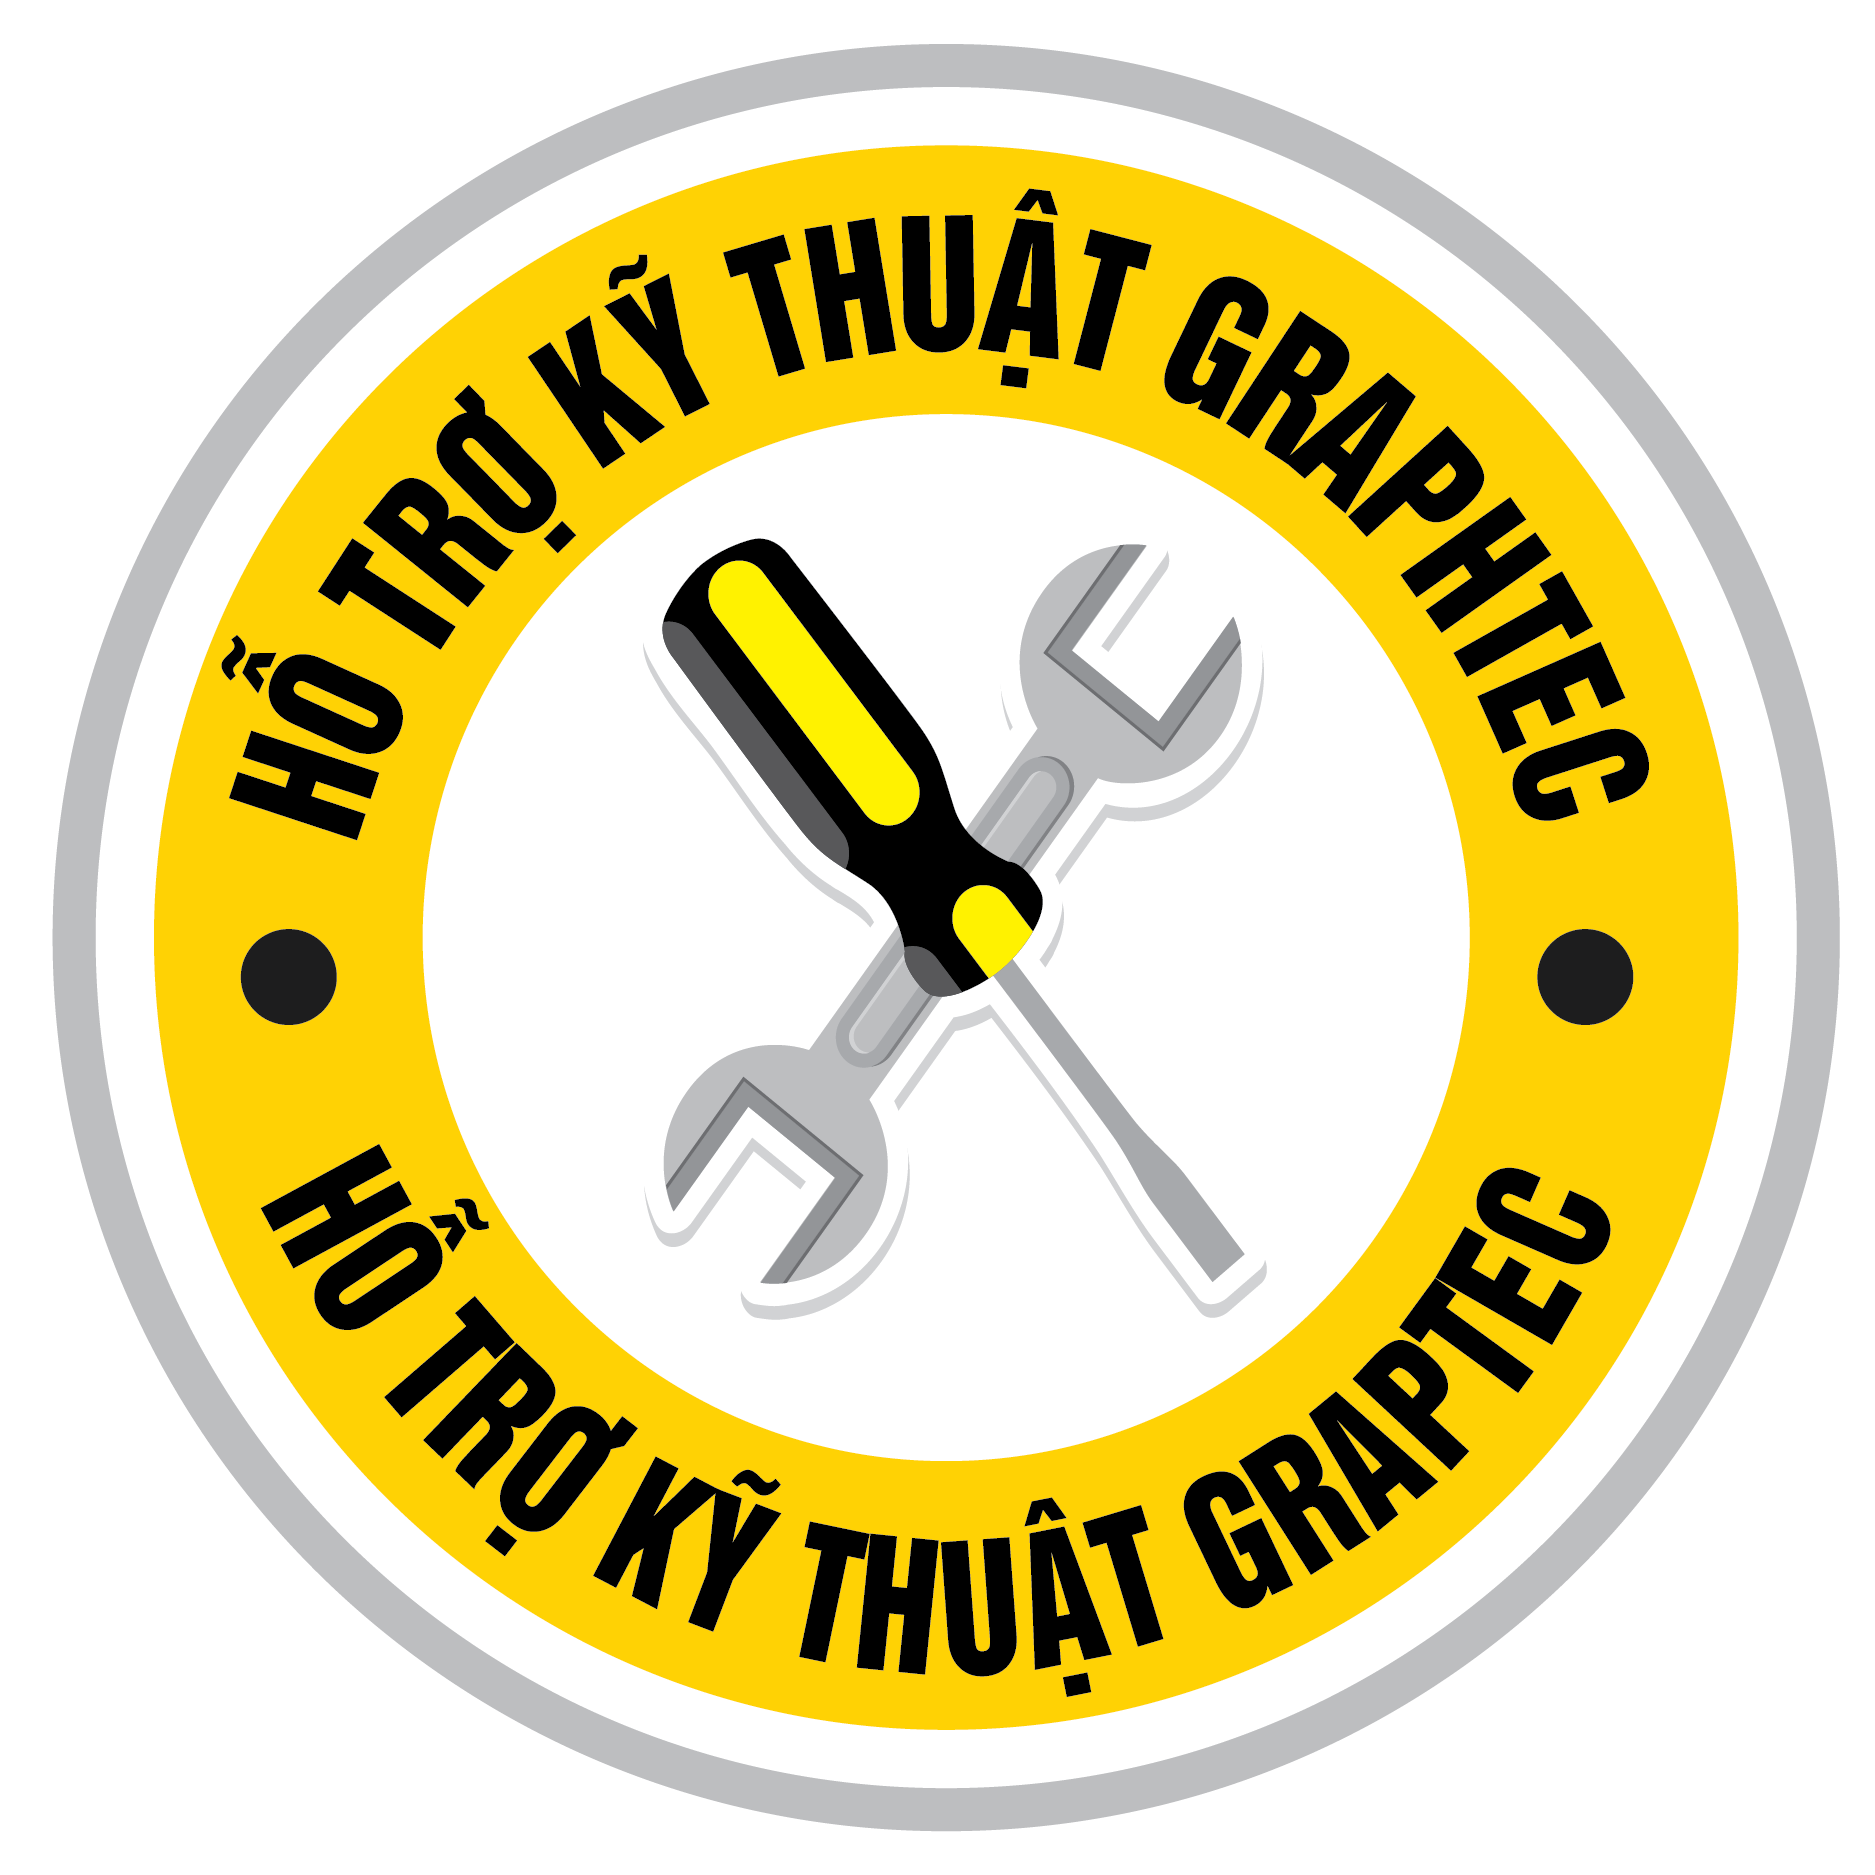 logo hotro kythuat 01